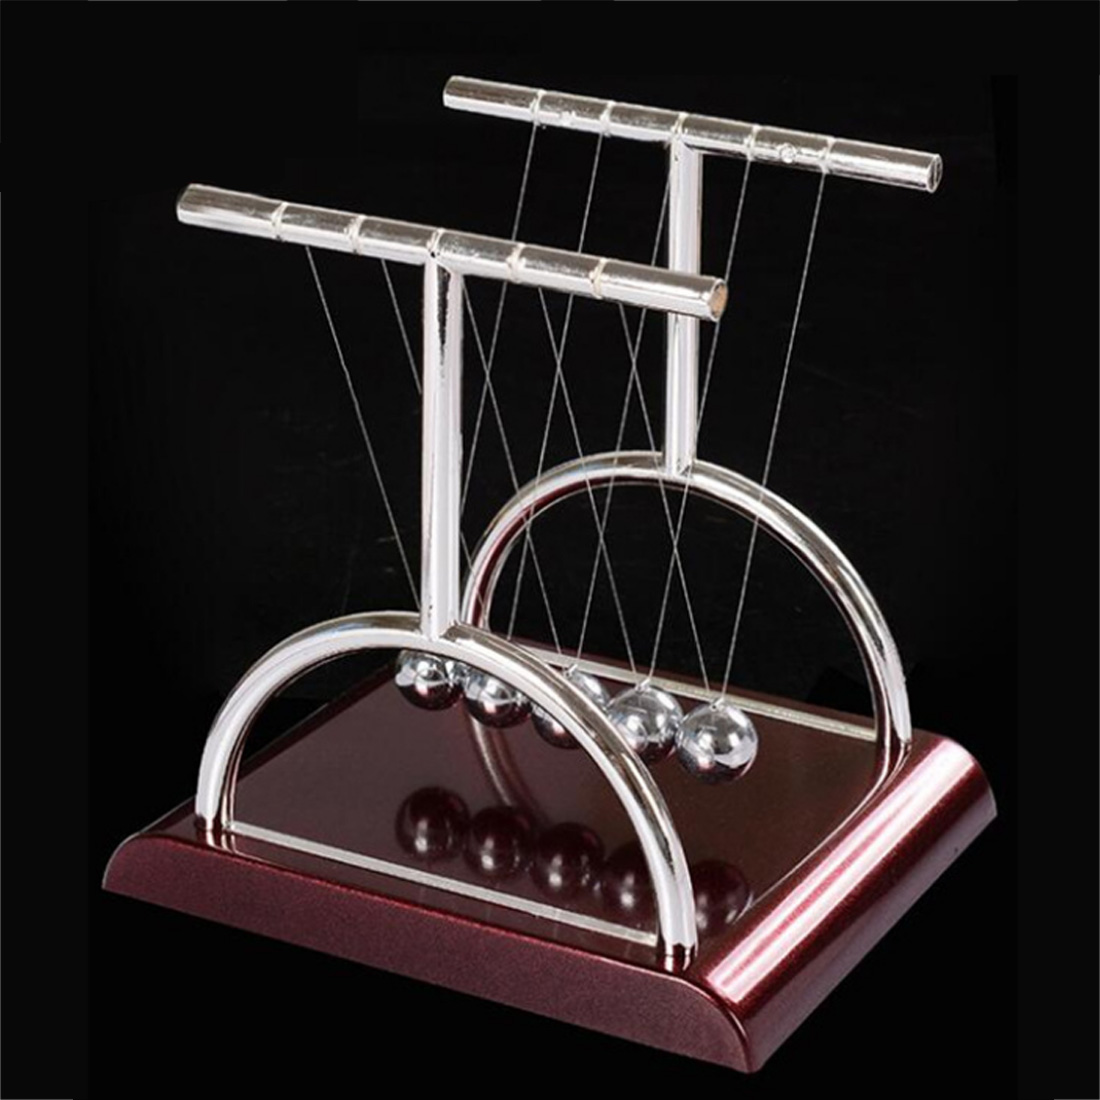 2019 New T Shaped Newton Cradle Balance Ball Science Puzzle Fun Desk Toy Stress Reliever Kinetic Motion Toy For Home And Office